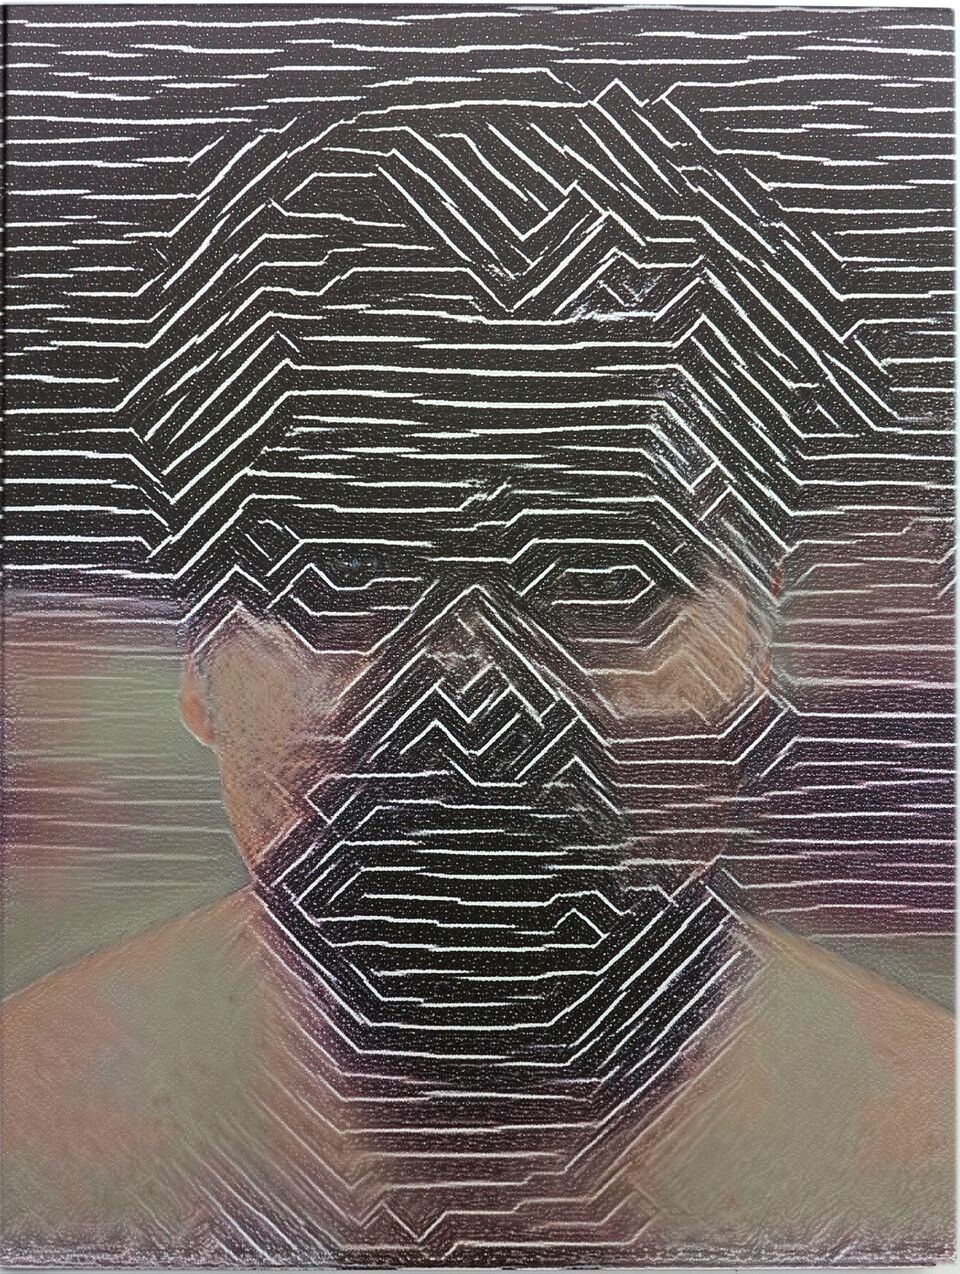 Artificial Intelligence Style Transfer Self-Portrait (Frank Stella & My Face)